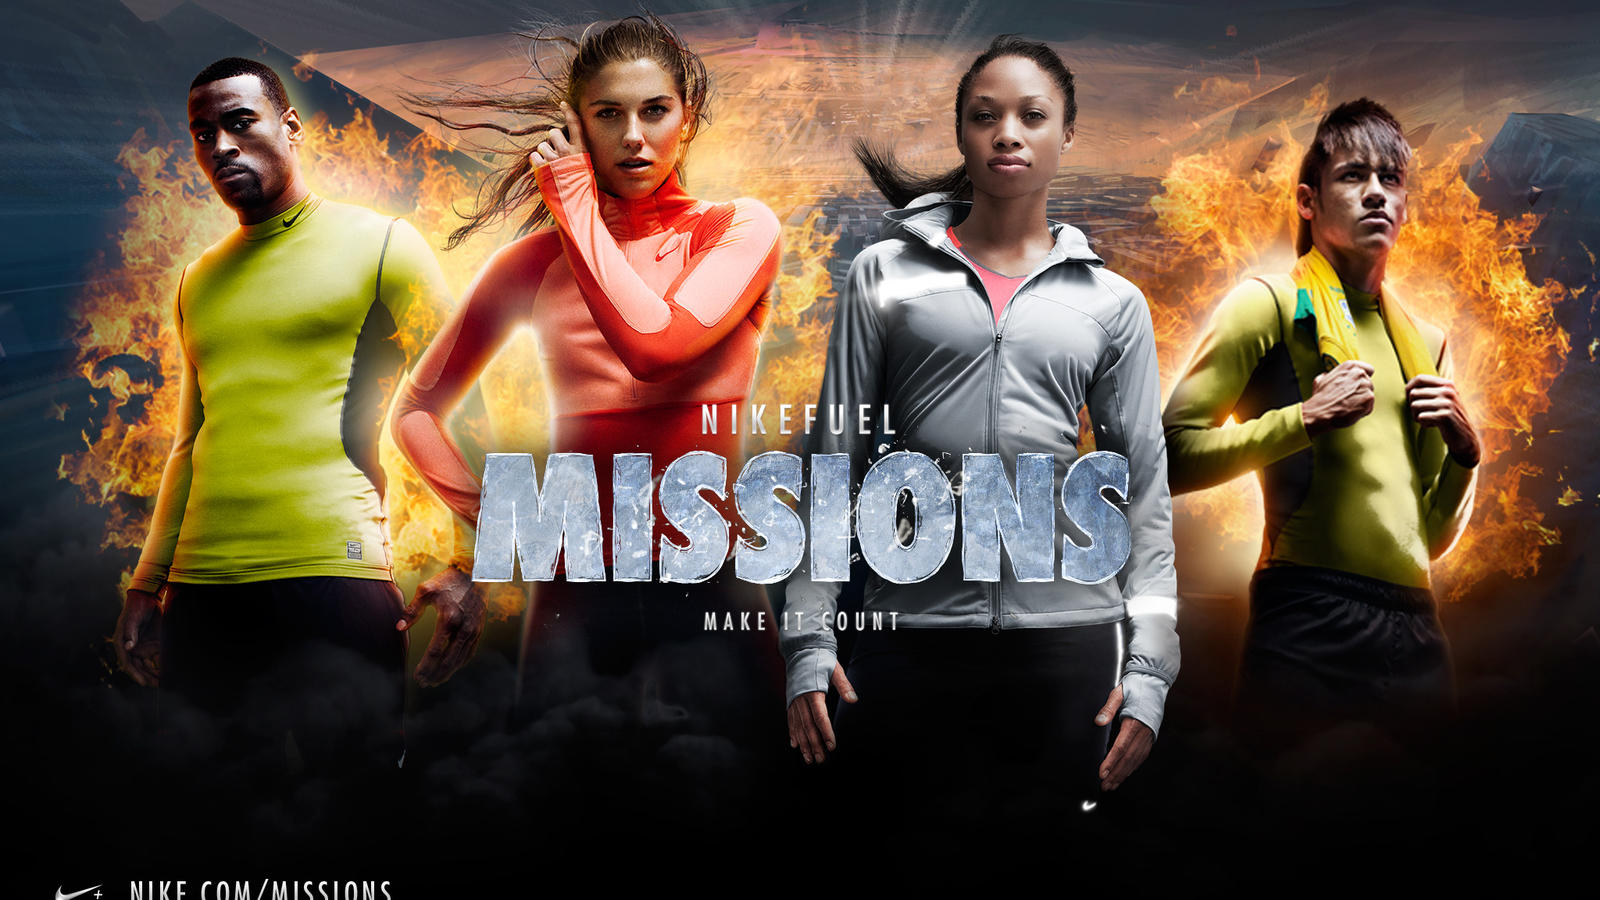 Nike_Fuel_Missions_Athlete